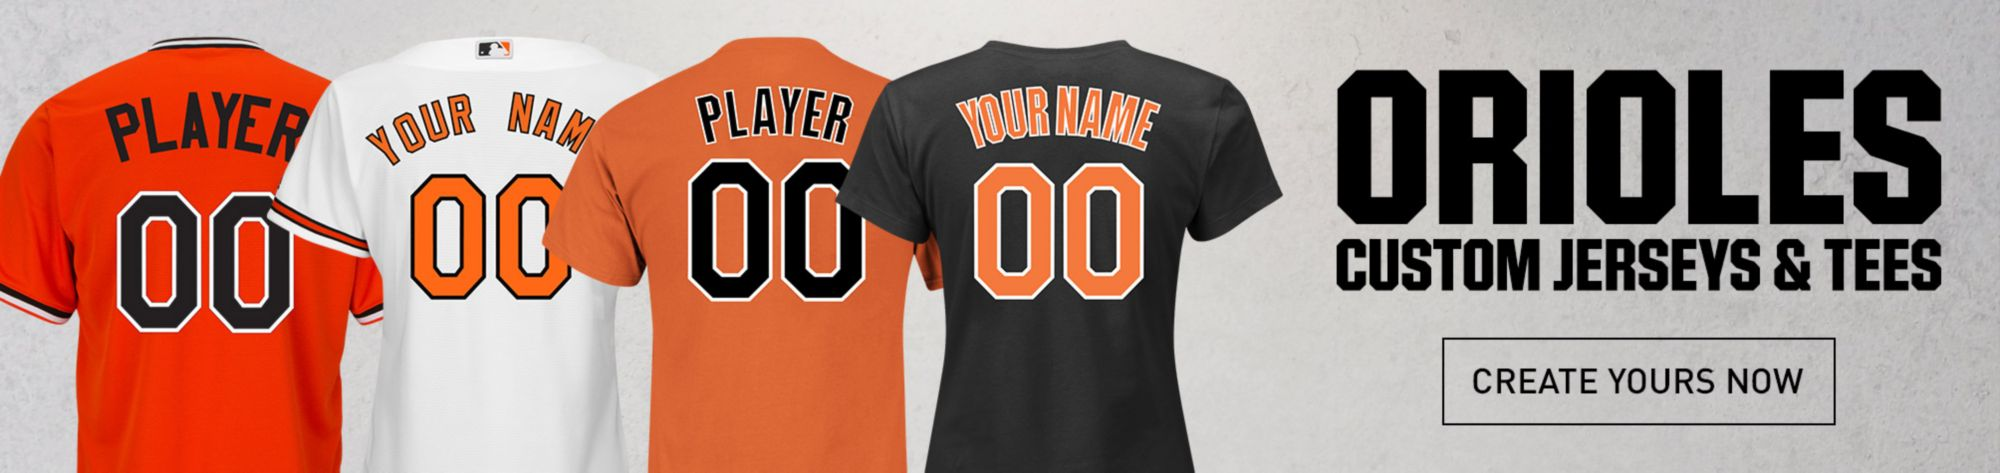 Baltimore Orioles Apparel & Gear